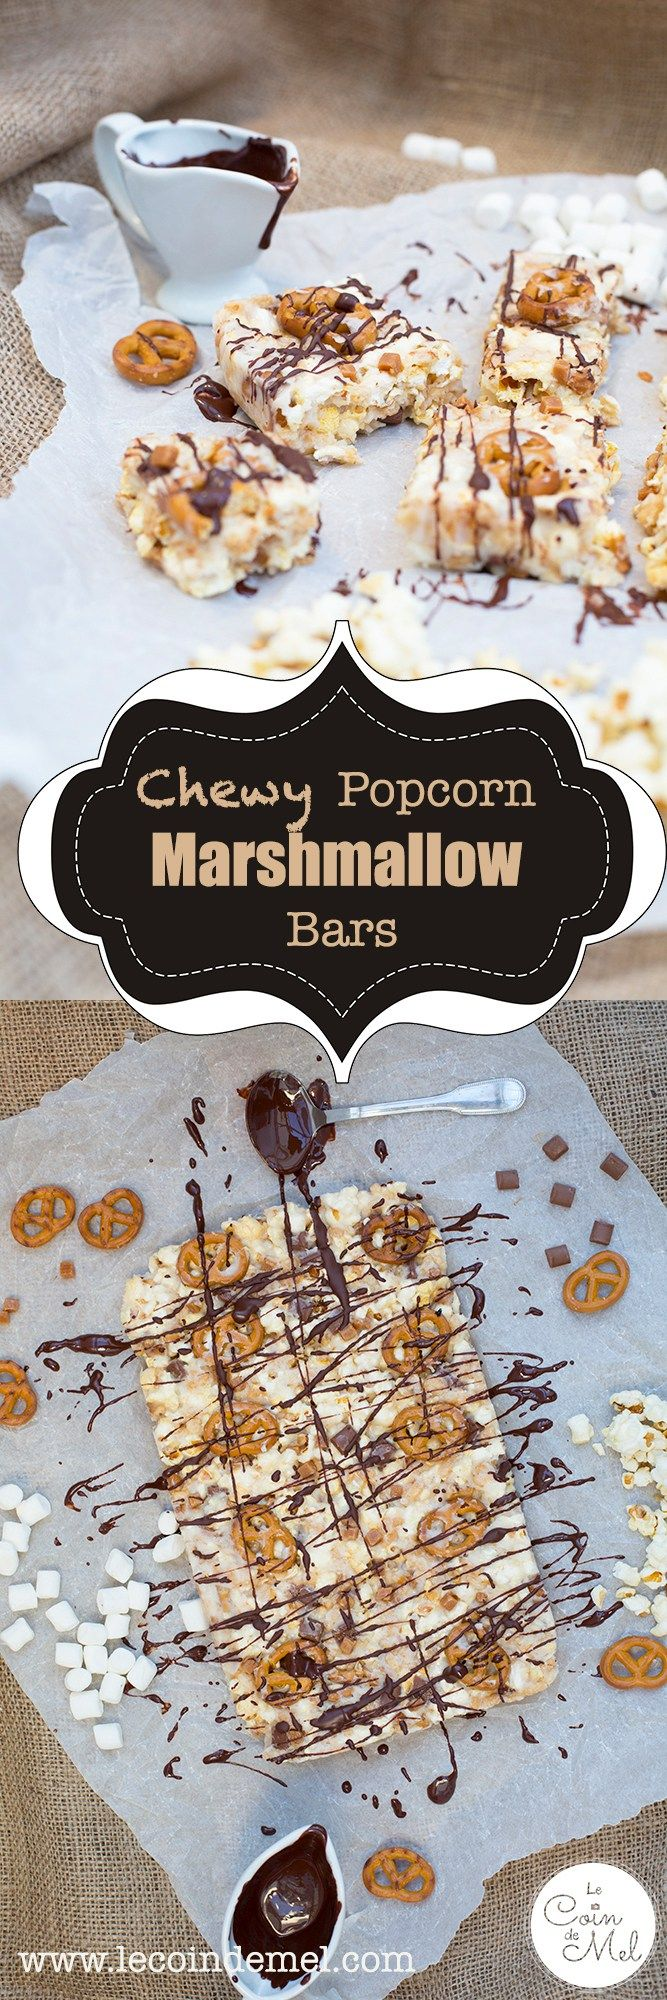 These popcorn marshmallow bars take minutes to make, require no baking and are as moreish as you can imagine! They also have a hint of saltiness with the pretzels & sweet & salty popcorn.  They are wheat-free, gluten-free, egg-free and nut-free (check all ingredients). #ad